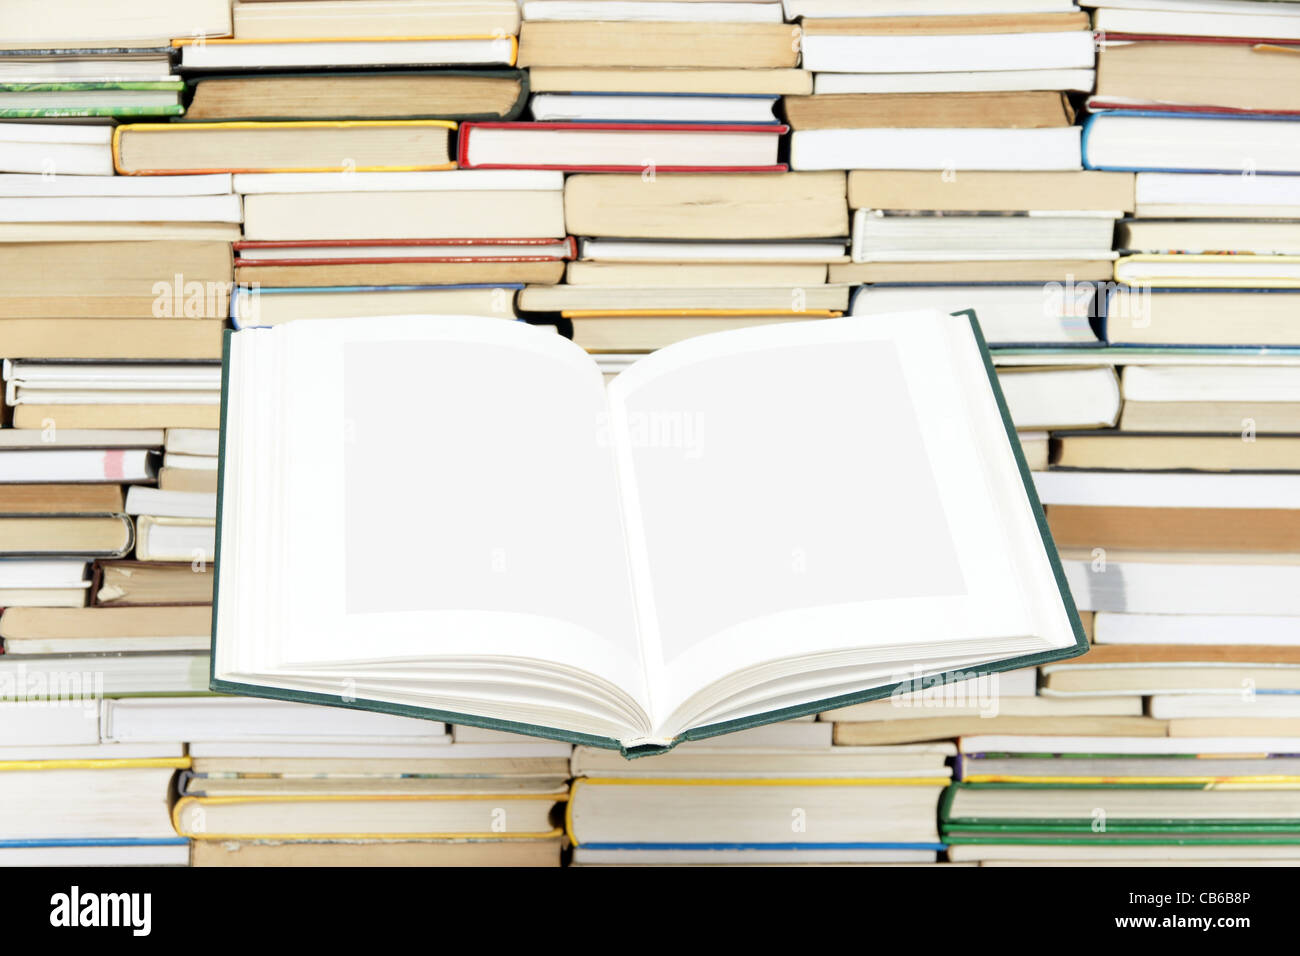 open book on background of arranged books - Stock Image